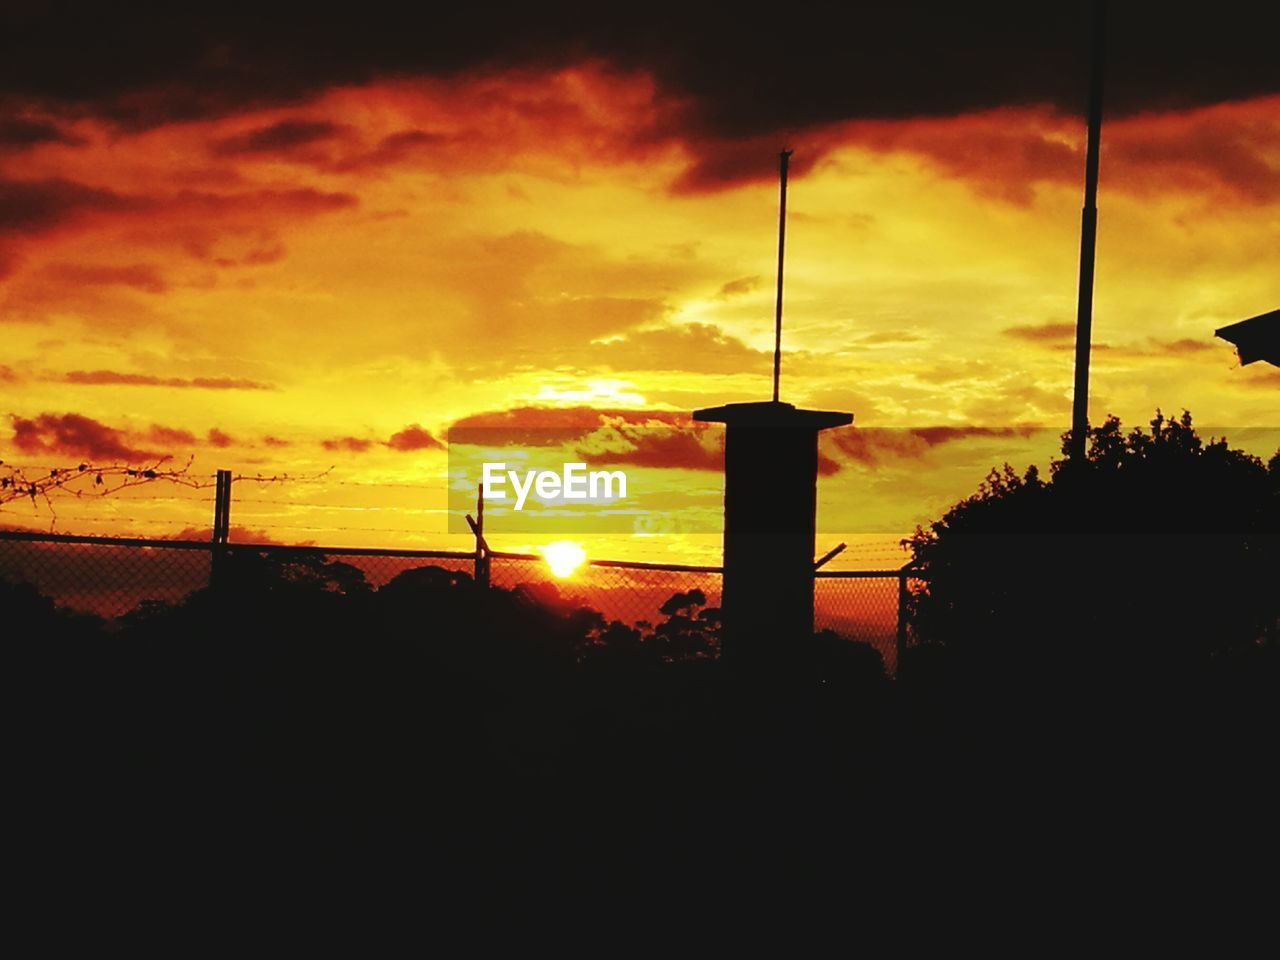 sunset, silhouette, orange color, sky, cloud - sky, dramatic sky, nature, beauty in nature, no people, scenics, outdoors, built structure, architecture, tree, city